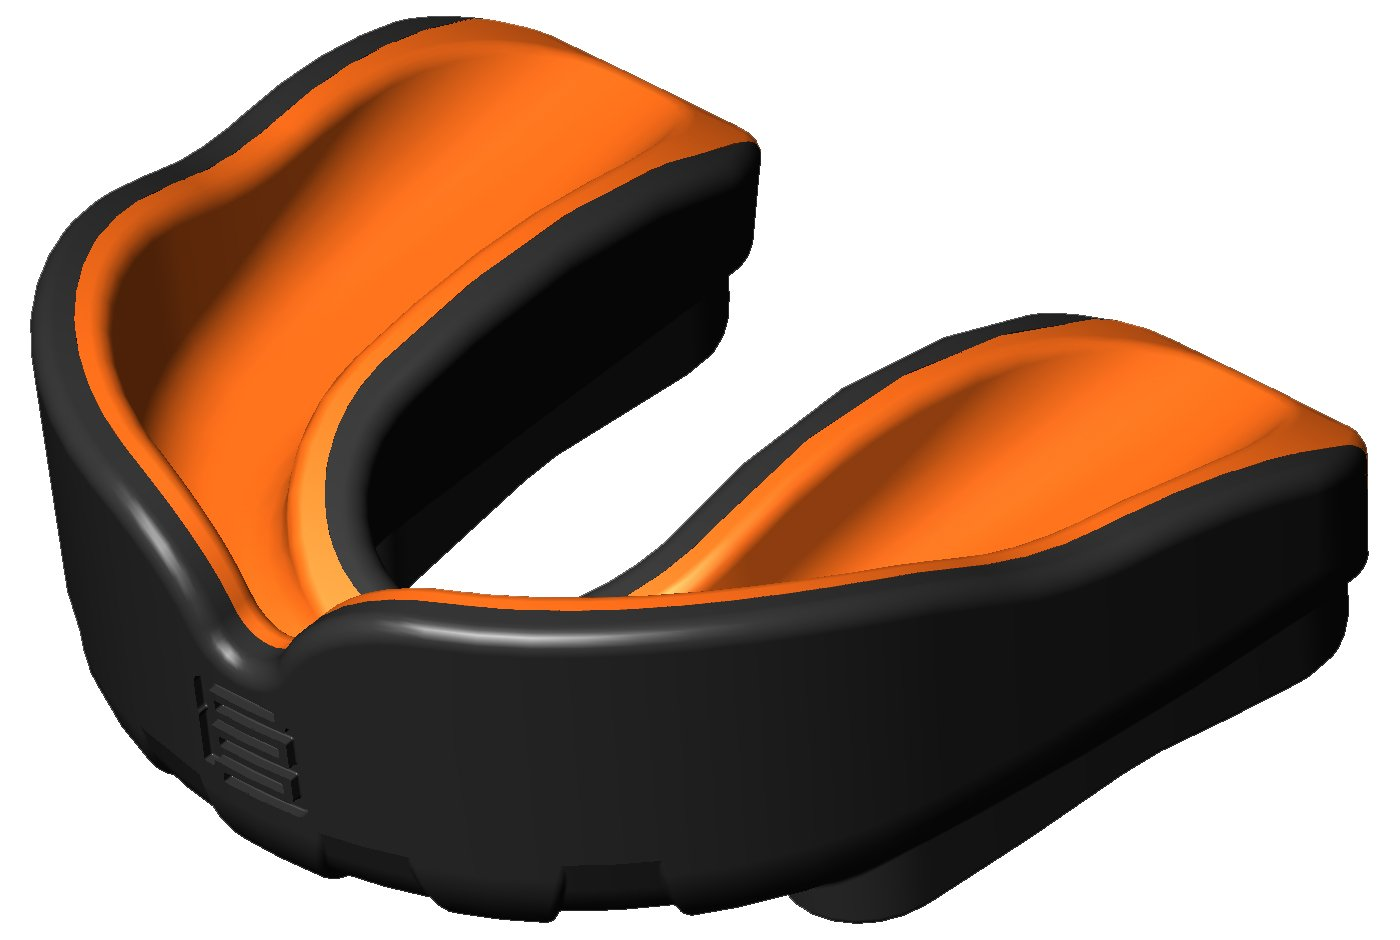 贅沢品 Makura Ignis Pro Mouthguard Junior Ignis Black/Orange Black Mouthguard/Orange B00AMCJ5PW, clothes tile:1acb6b52 --- a0267596.xsph.ru